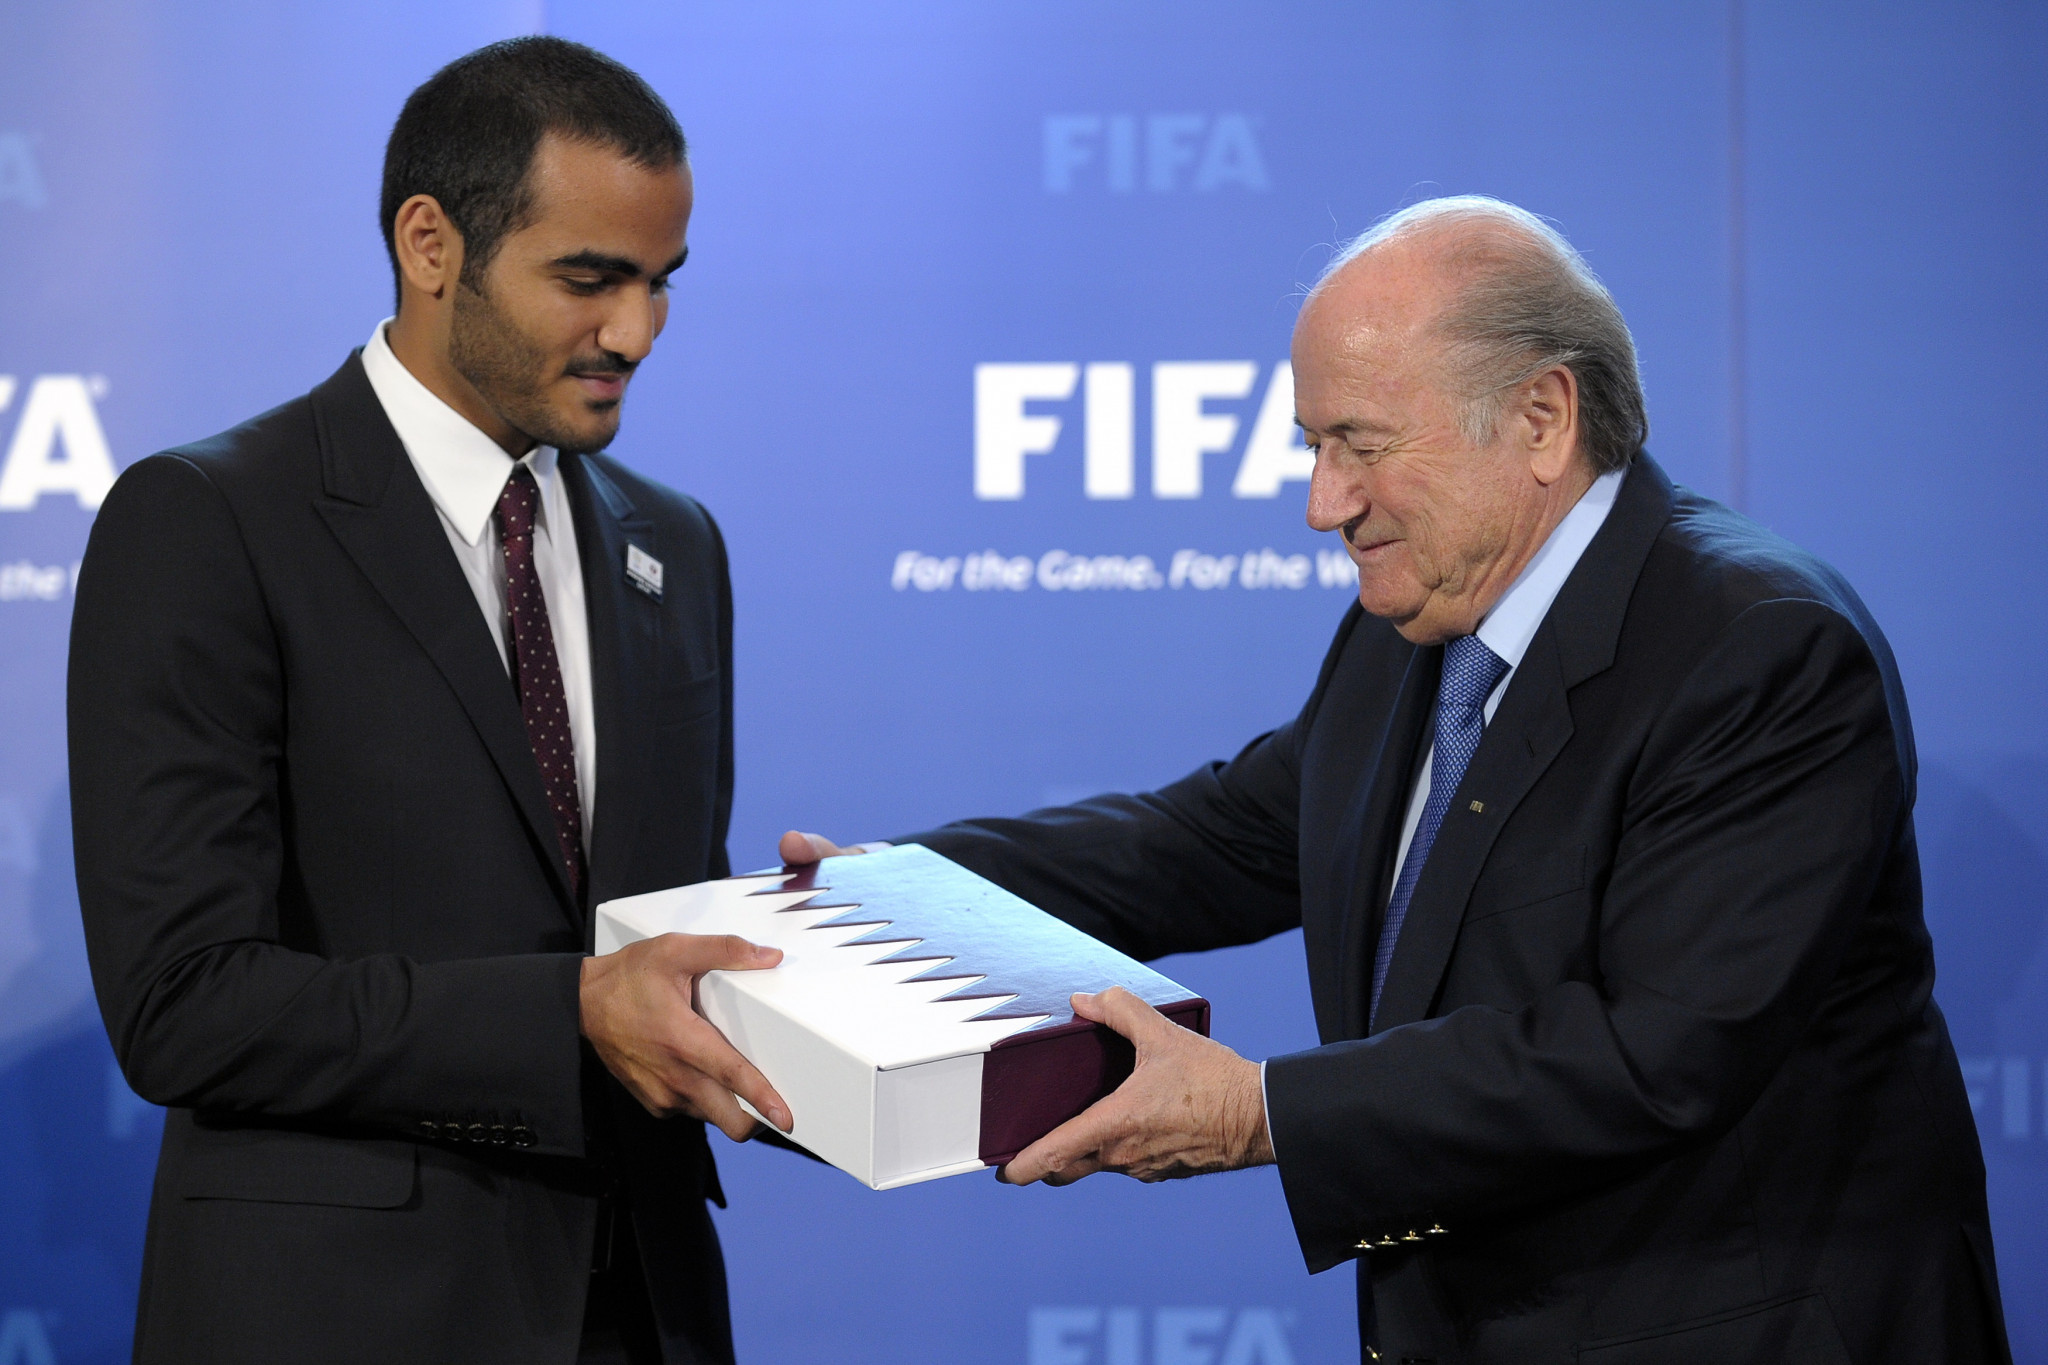 Chairman of Qatar 2022 bid committee Sheik Mohammed bin Hamad Al Thani delivers the bid book to FIFA President Sepp Blatter during an official handover ceremony at FIFA's headquarters in May 2010 in Zurich ©Getty Images